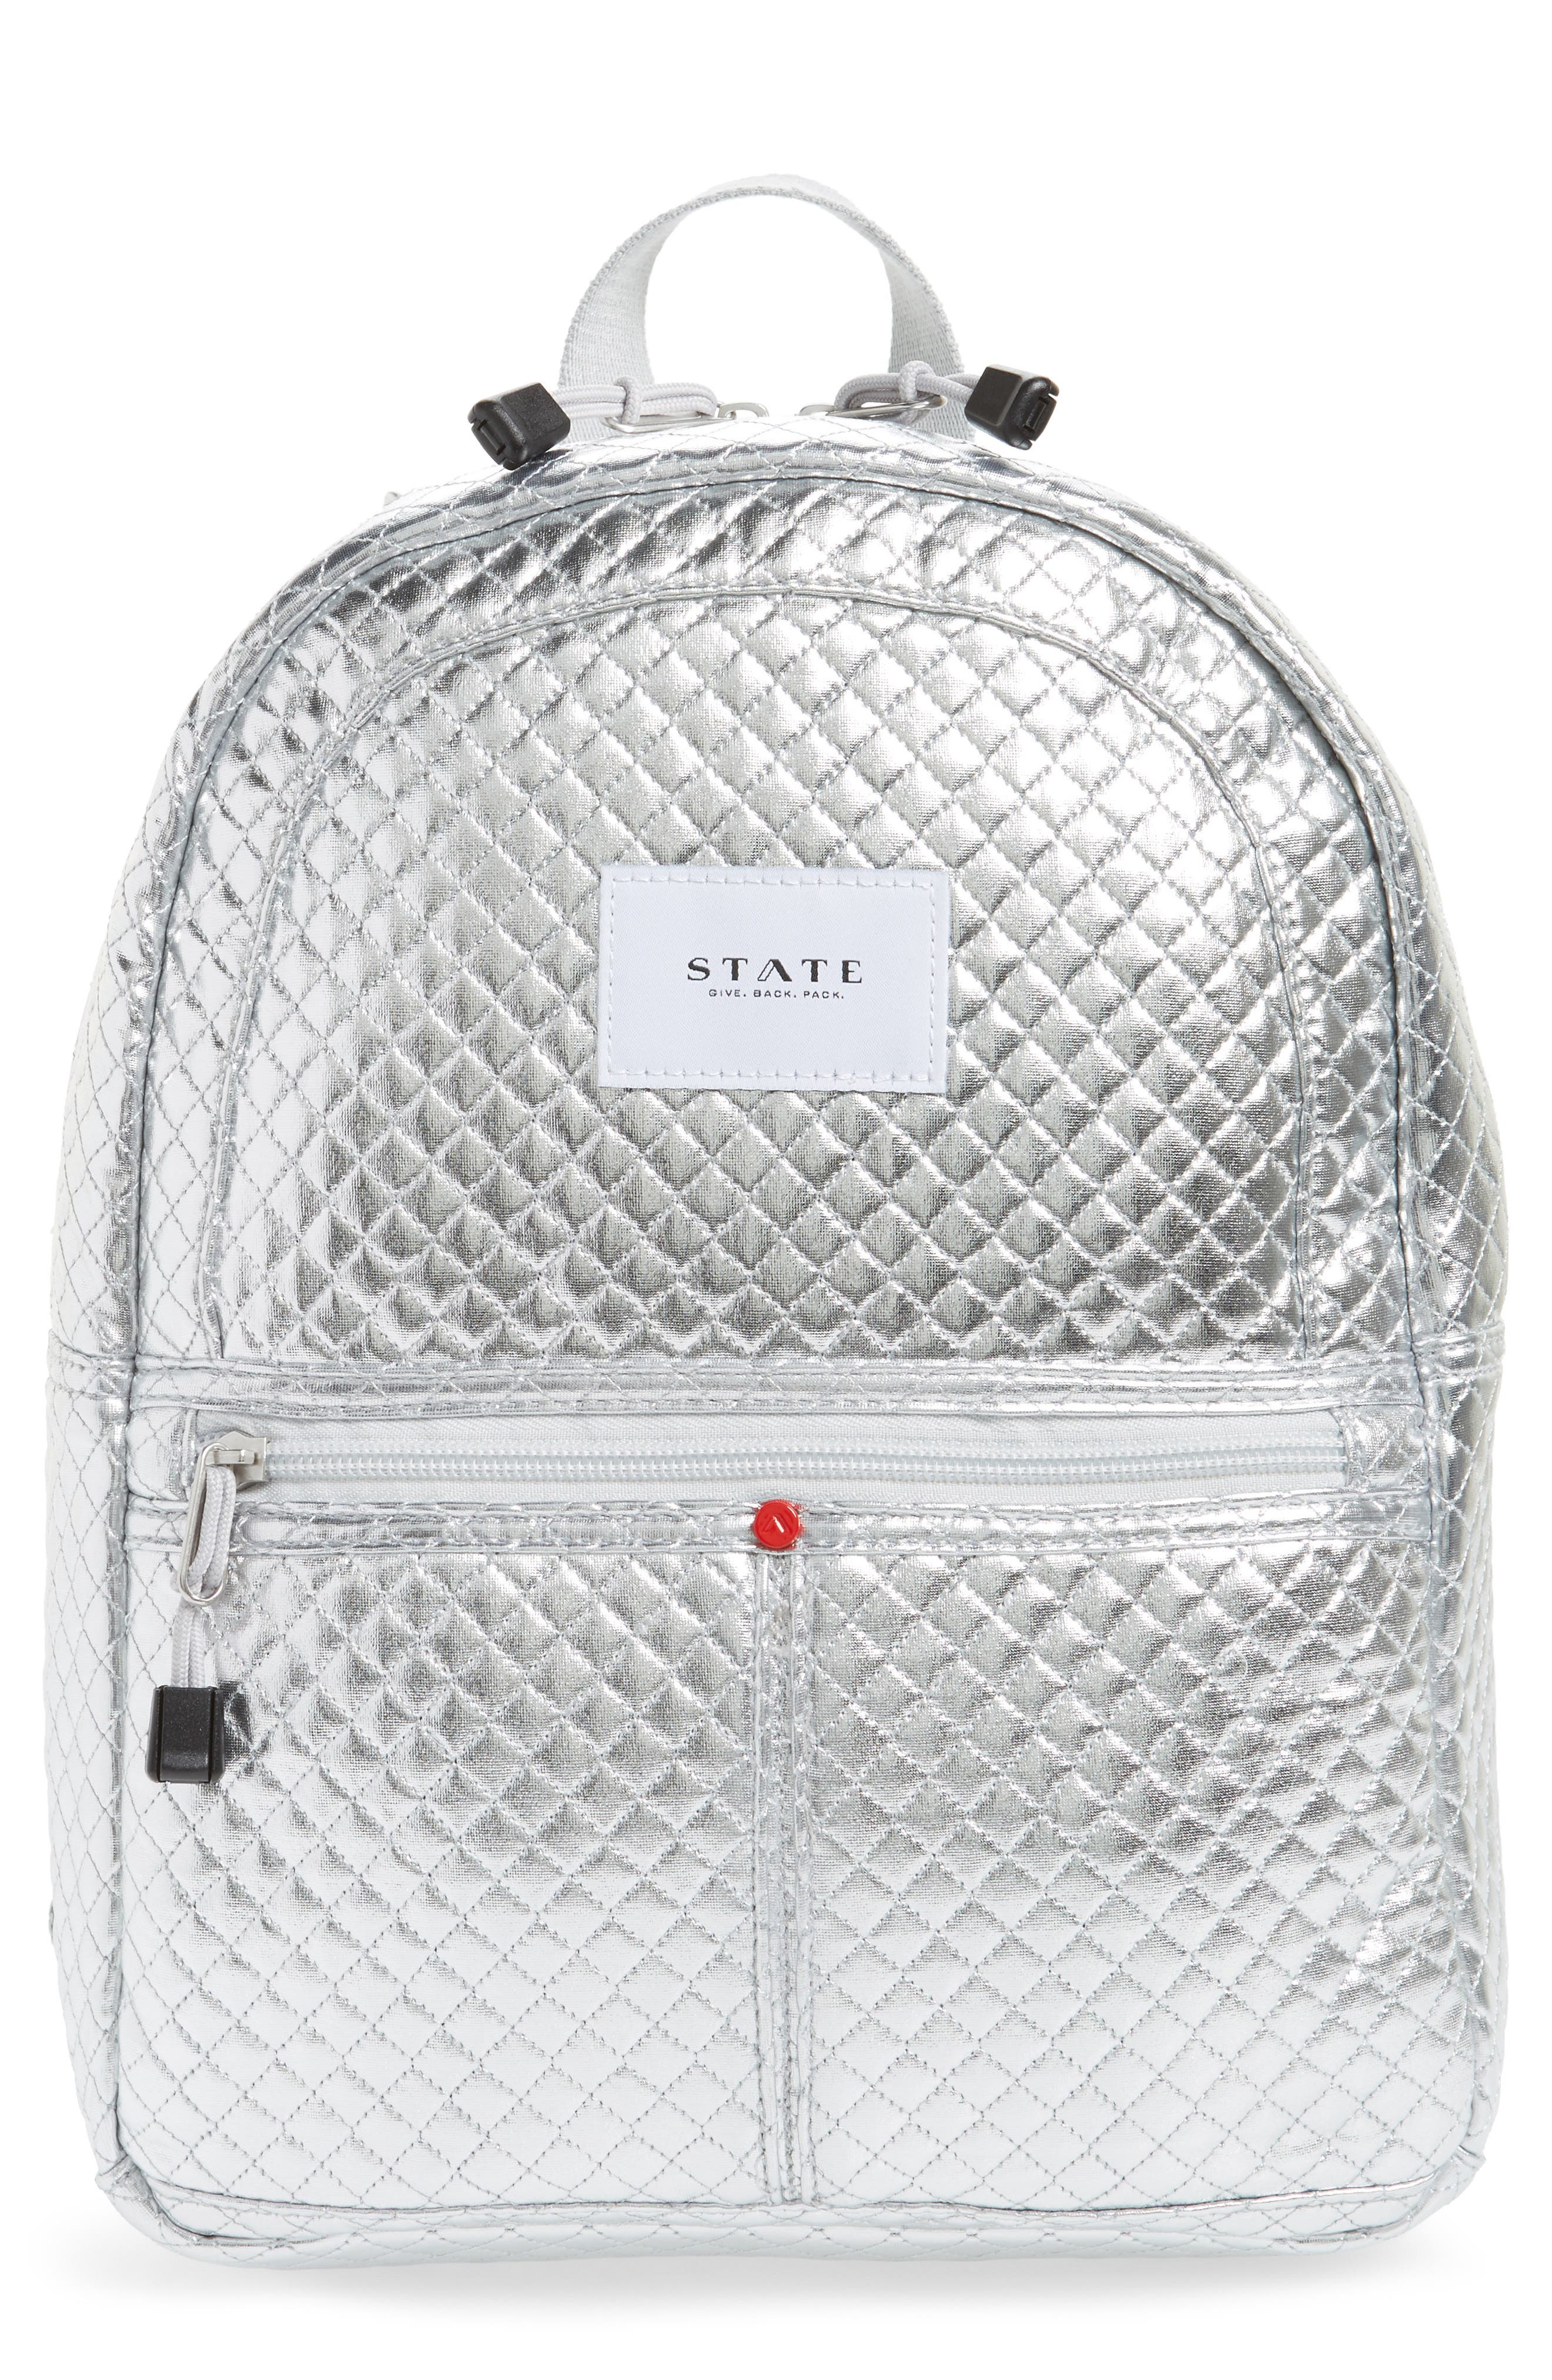 Flatbush Mini Kane Backpack,                         Main,                         color, Silver Quilted